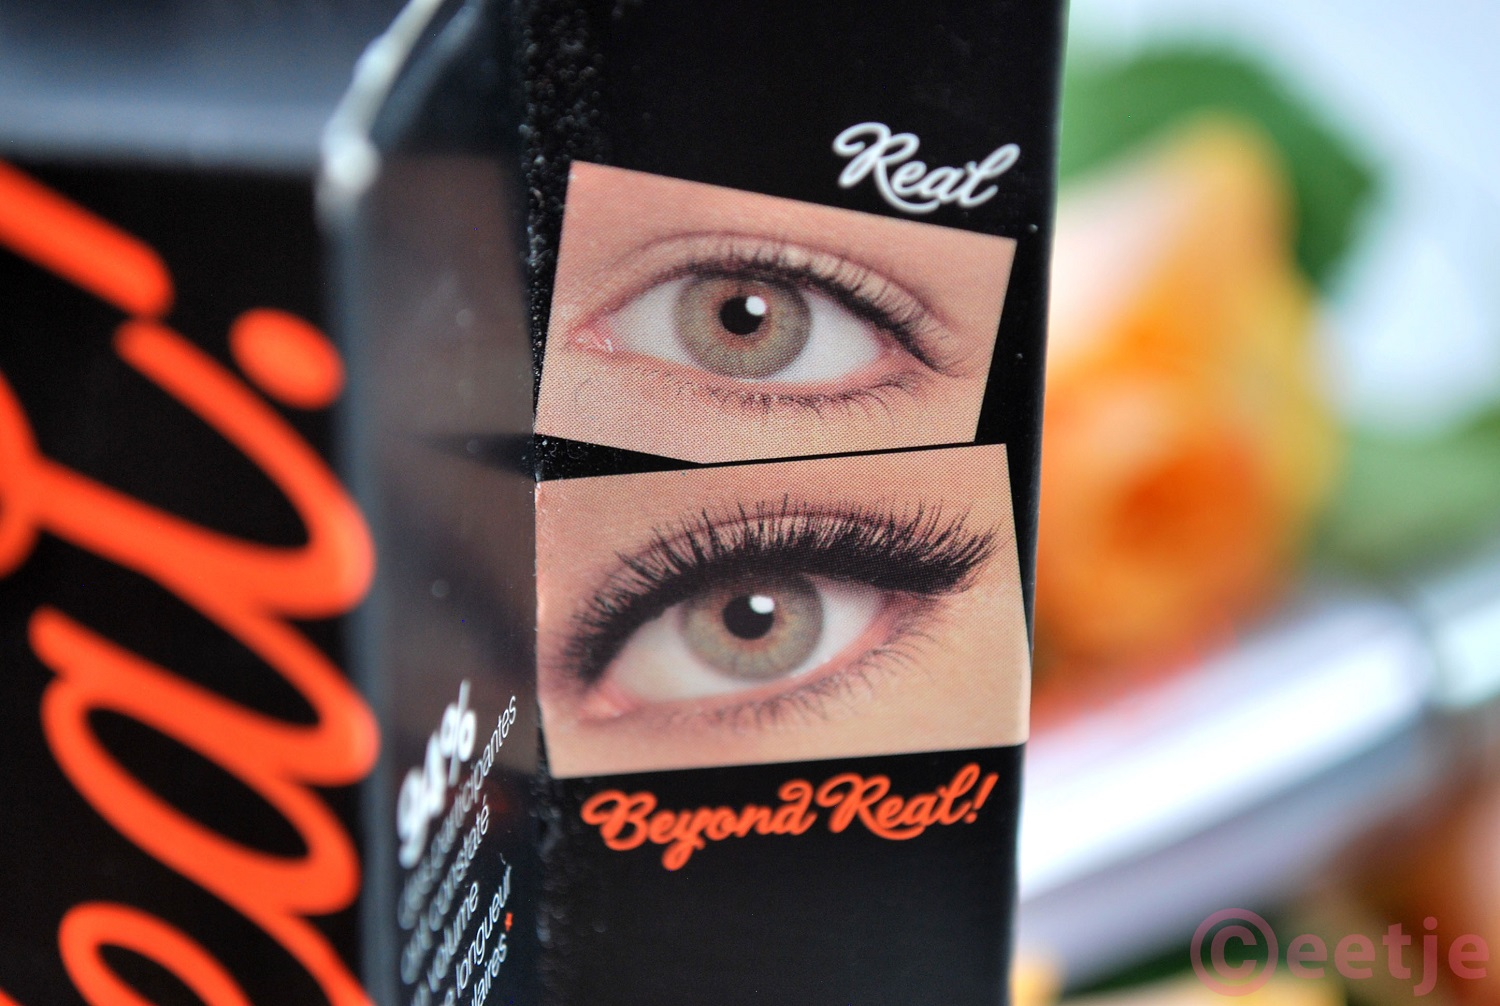 best mascara Benefit They're real mascara review swatch